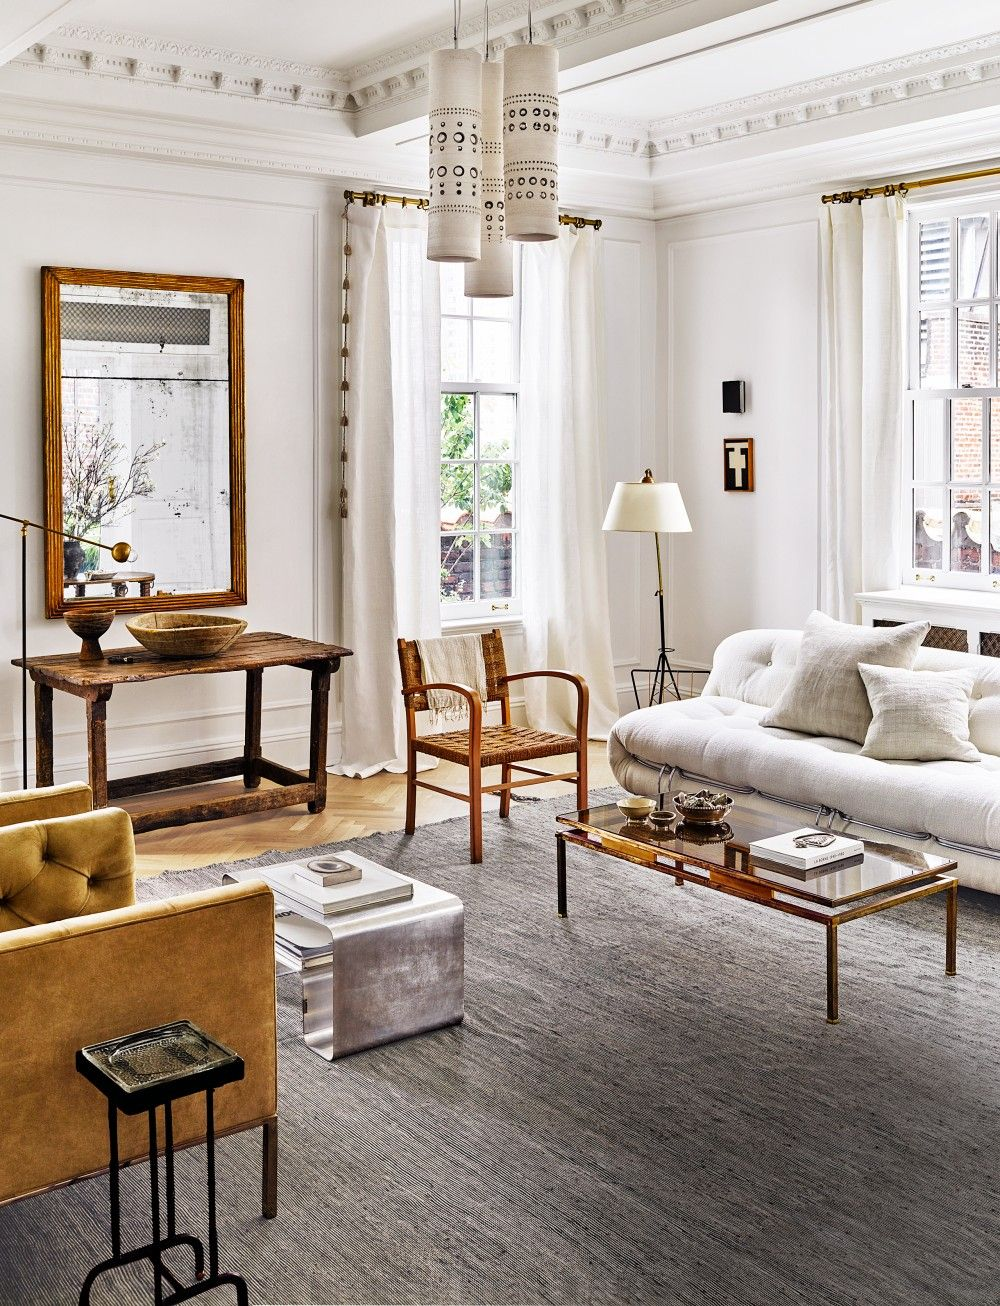 Superb Living Room By Nate Berkus And Jeremiah Brent In New York, NY